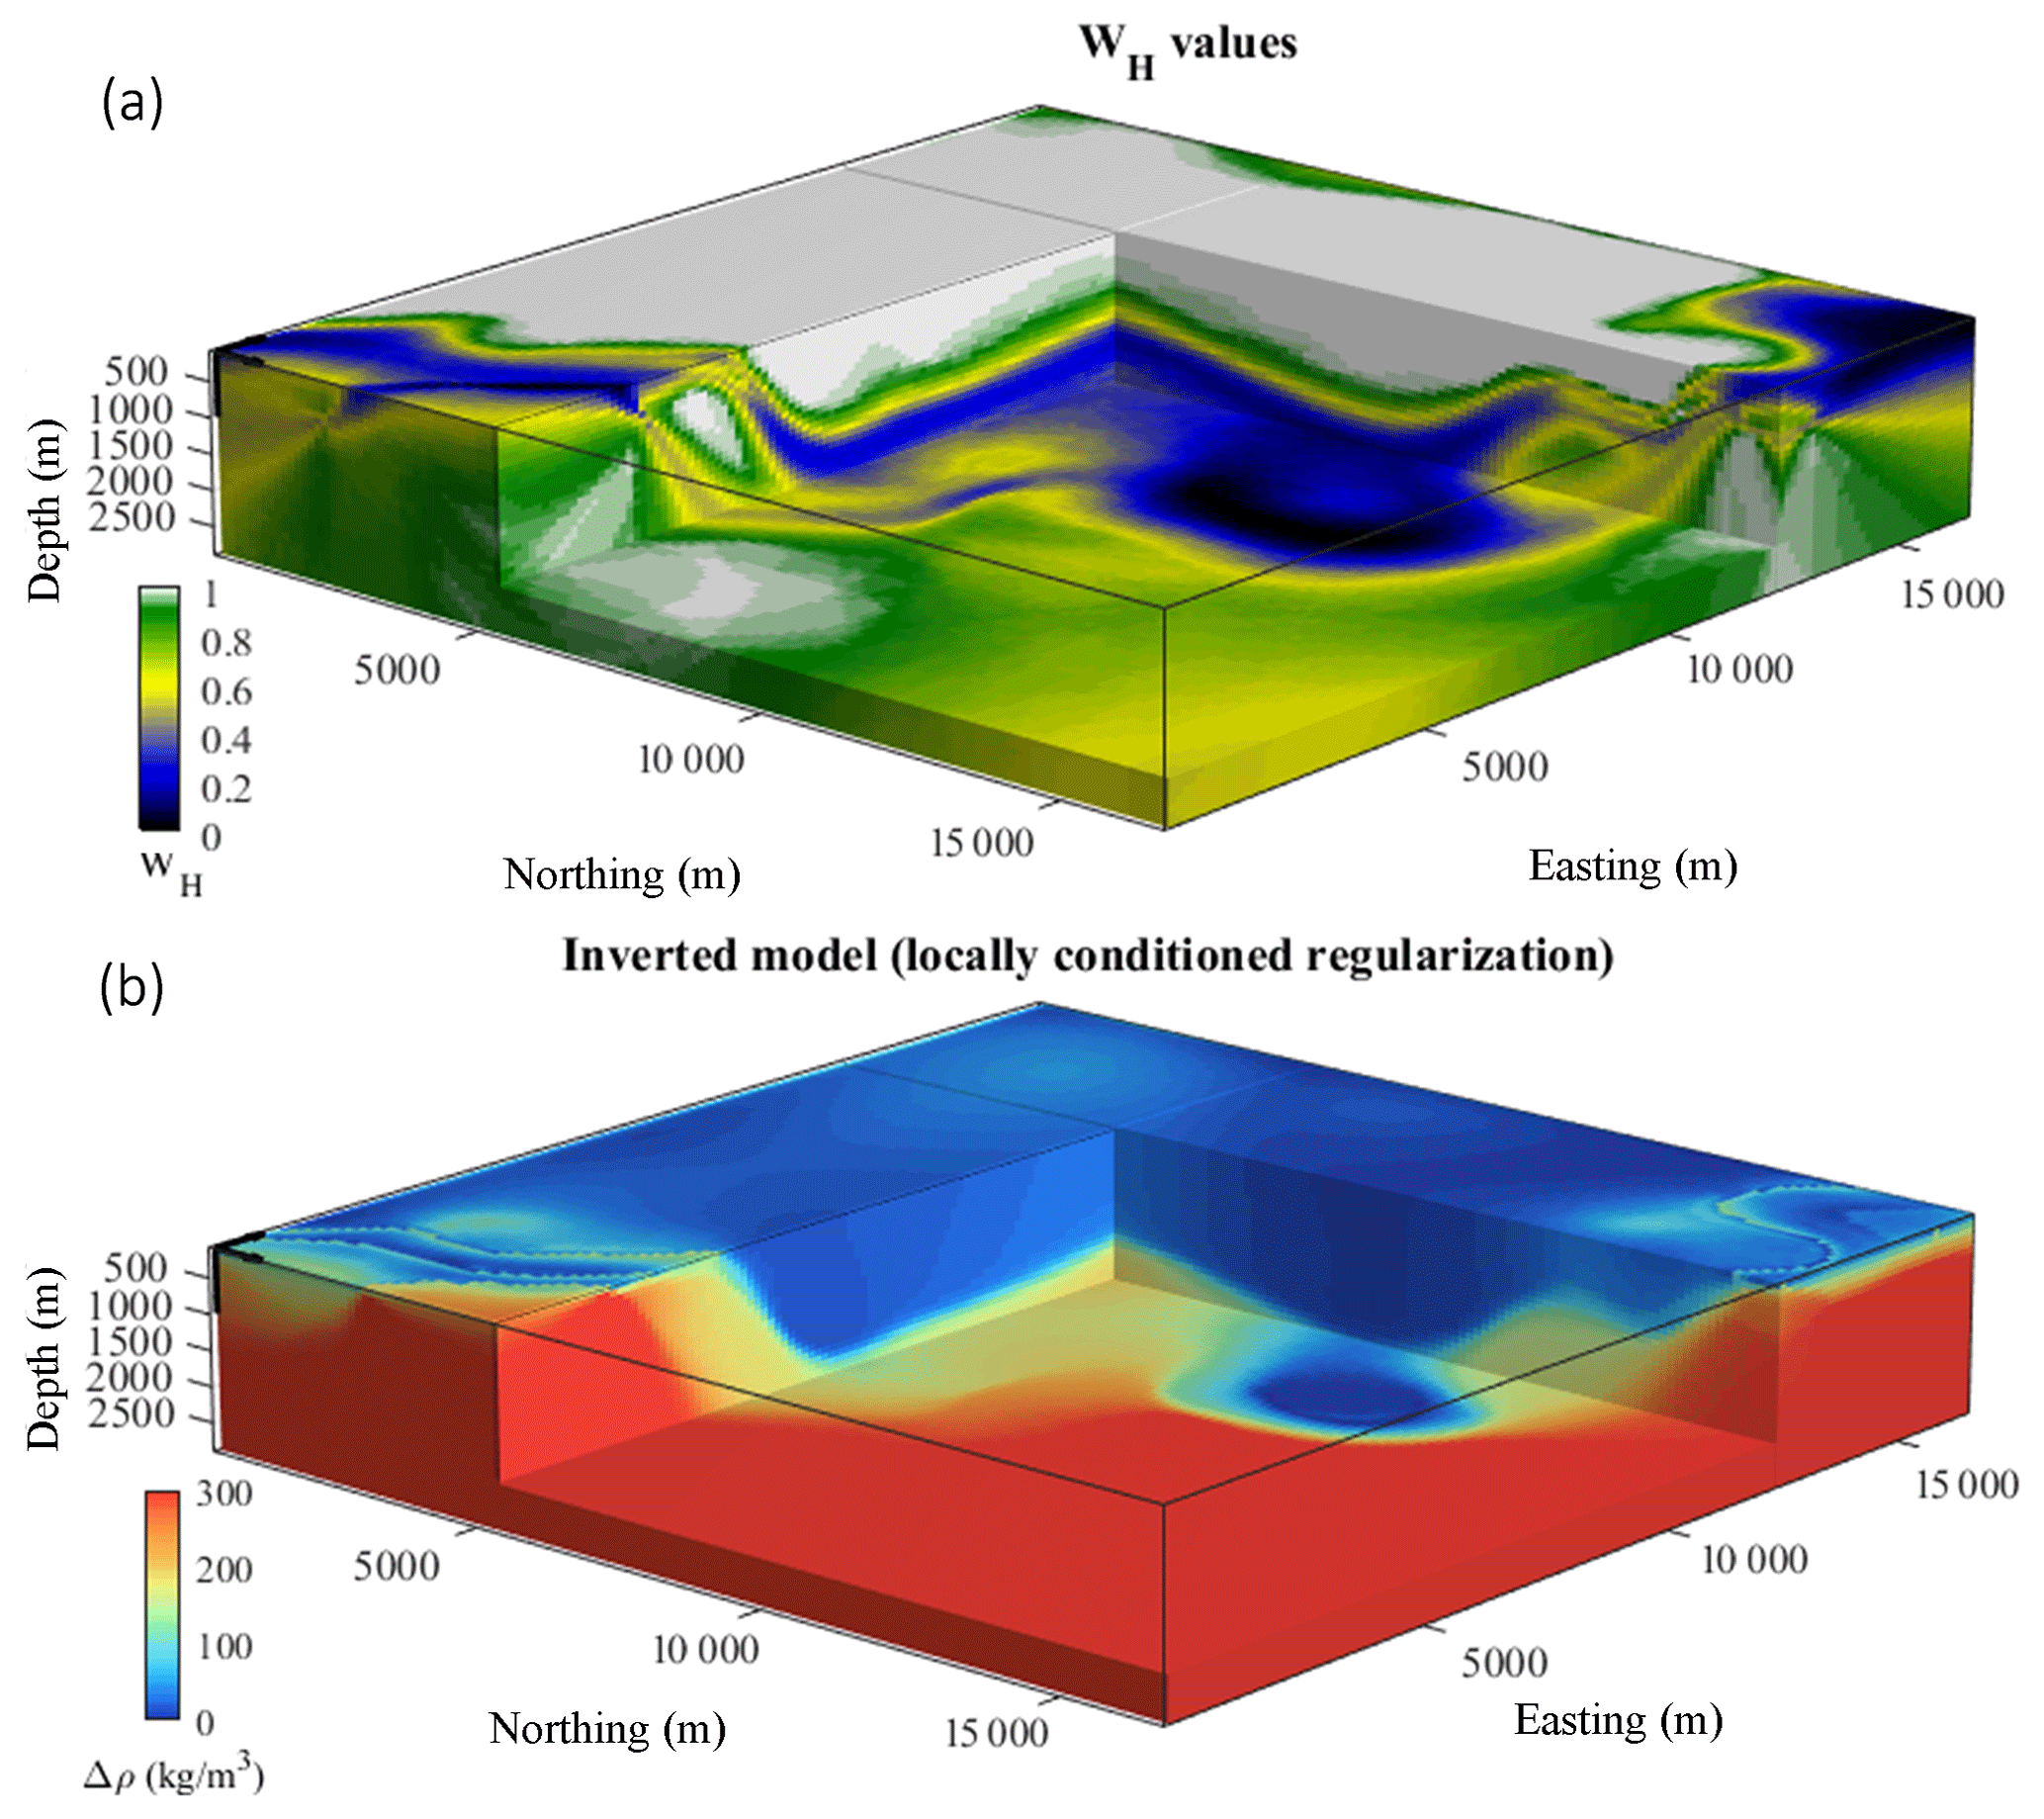 SE - Integration of geoscientific uncertainty into geophysical